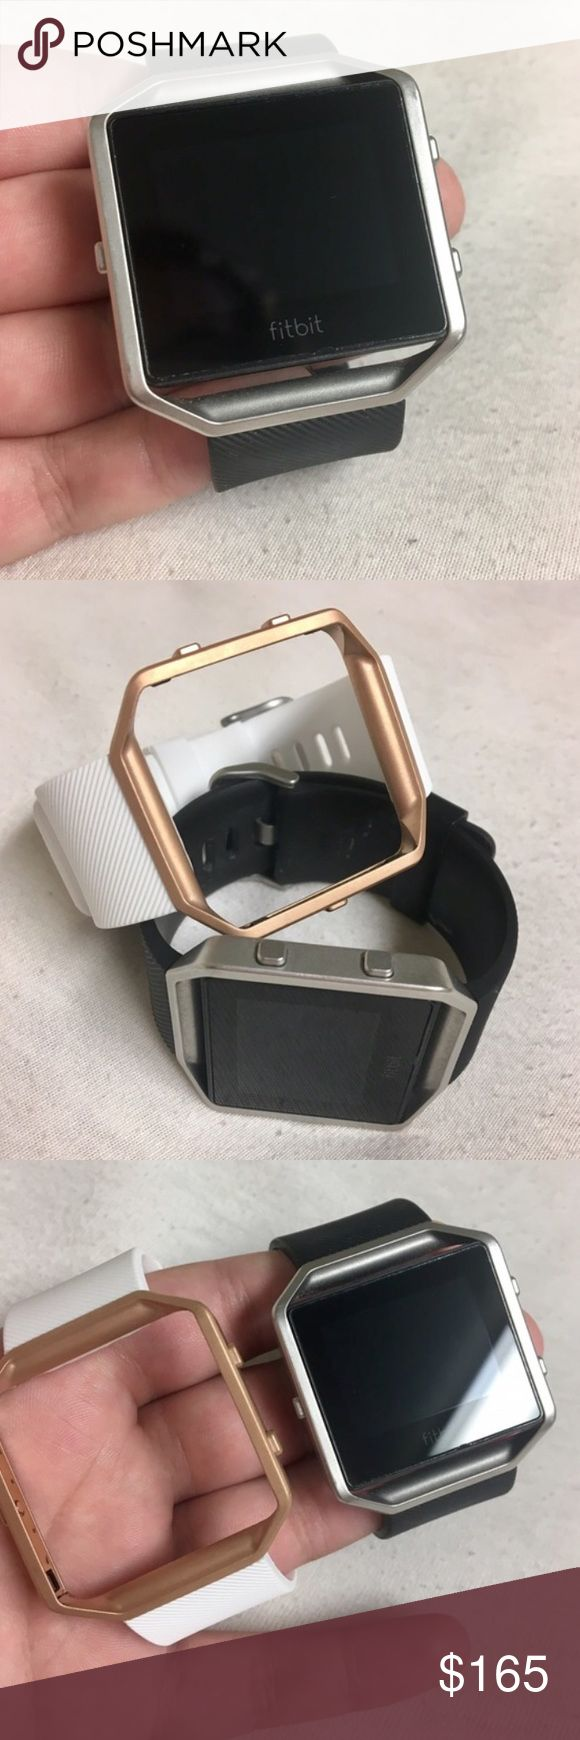 FITBIT BLAZE: barely worn with accessories! Basically brand new FitBit Blaze. Tracks steps, sleeping patterns, stairs climbed, calories burned, water intake, active minutes and more! Size SMALL. Comes with interchangeable white/black bands and silver/rose gold frames. Has a screen protector as well. I'm only selling because I don't use it much anymore. (Original price includes retail price of Fitbit + bands that were bought later on.) SHIPS WITHIN 2 DAYS. FitBit Accessories Watches